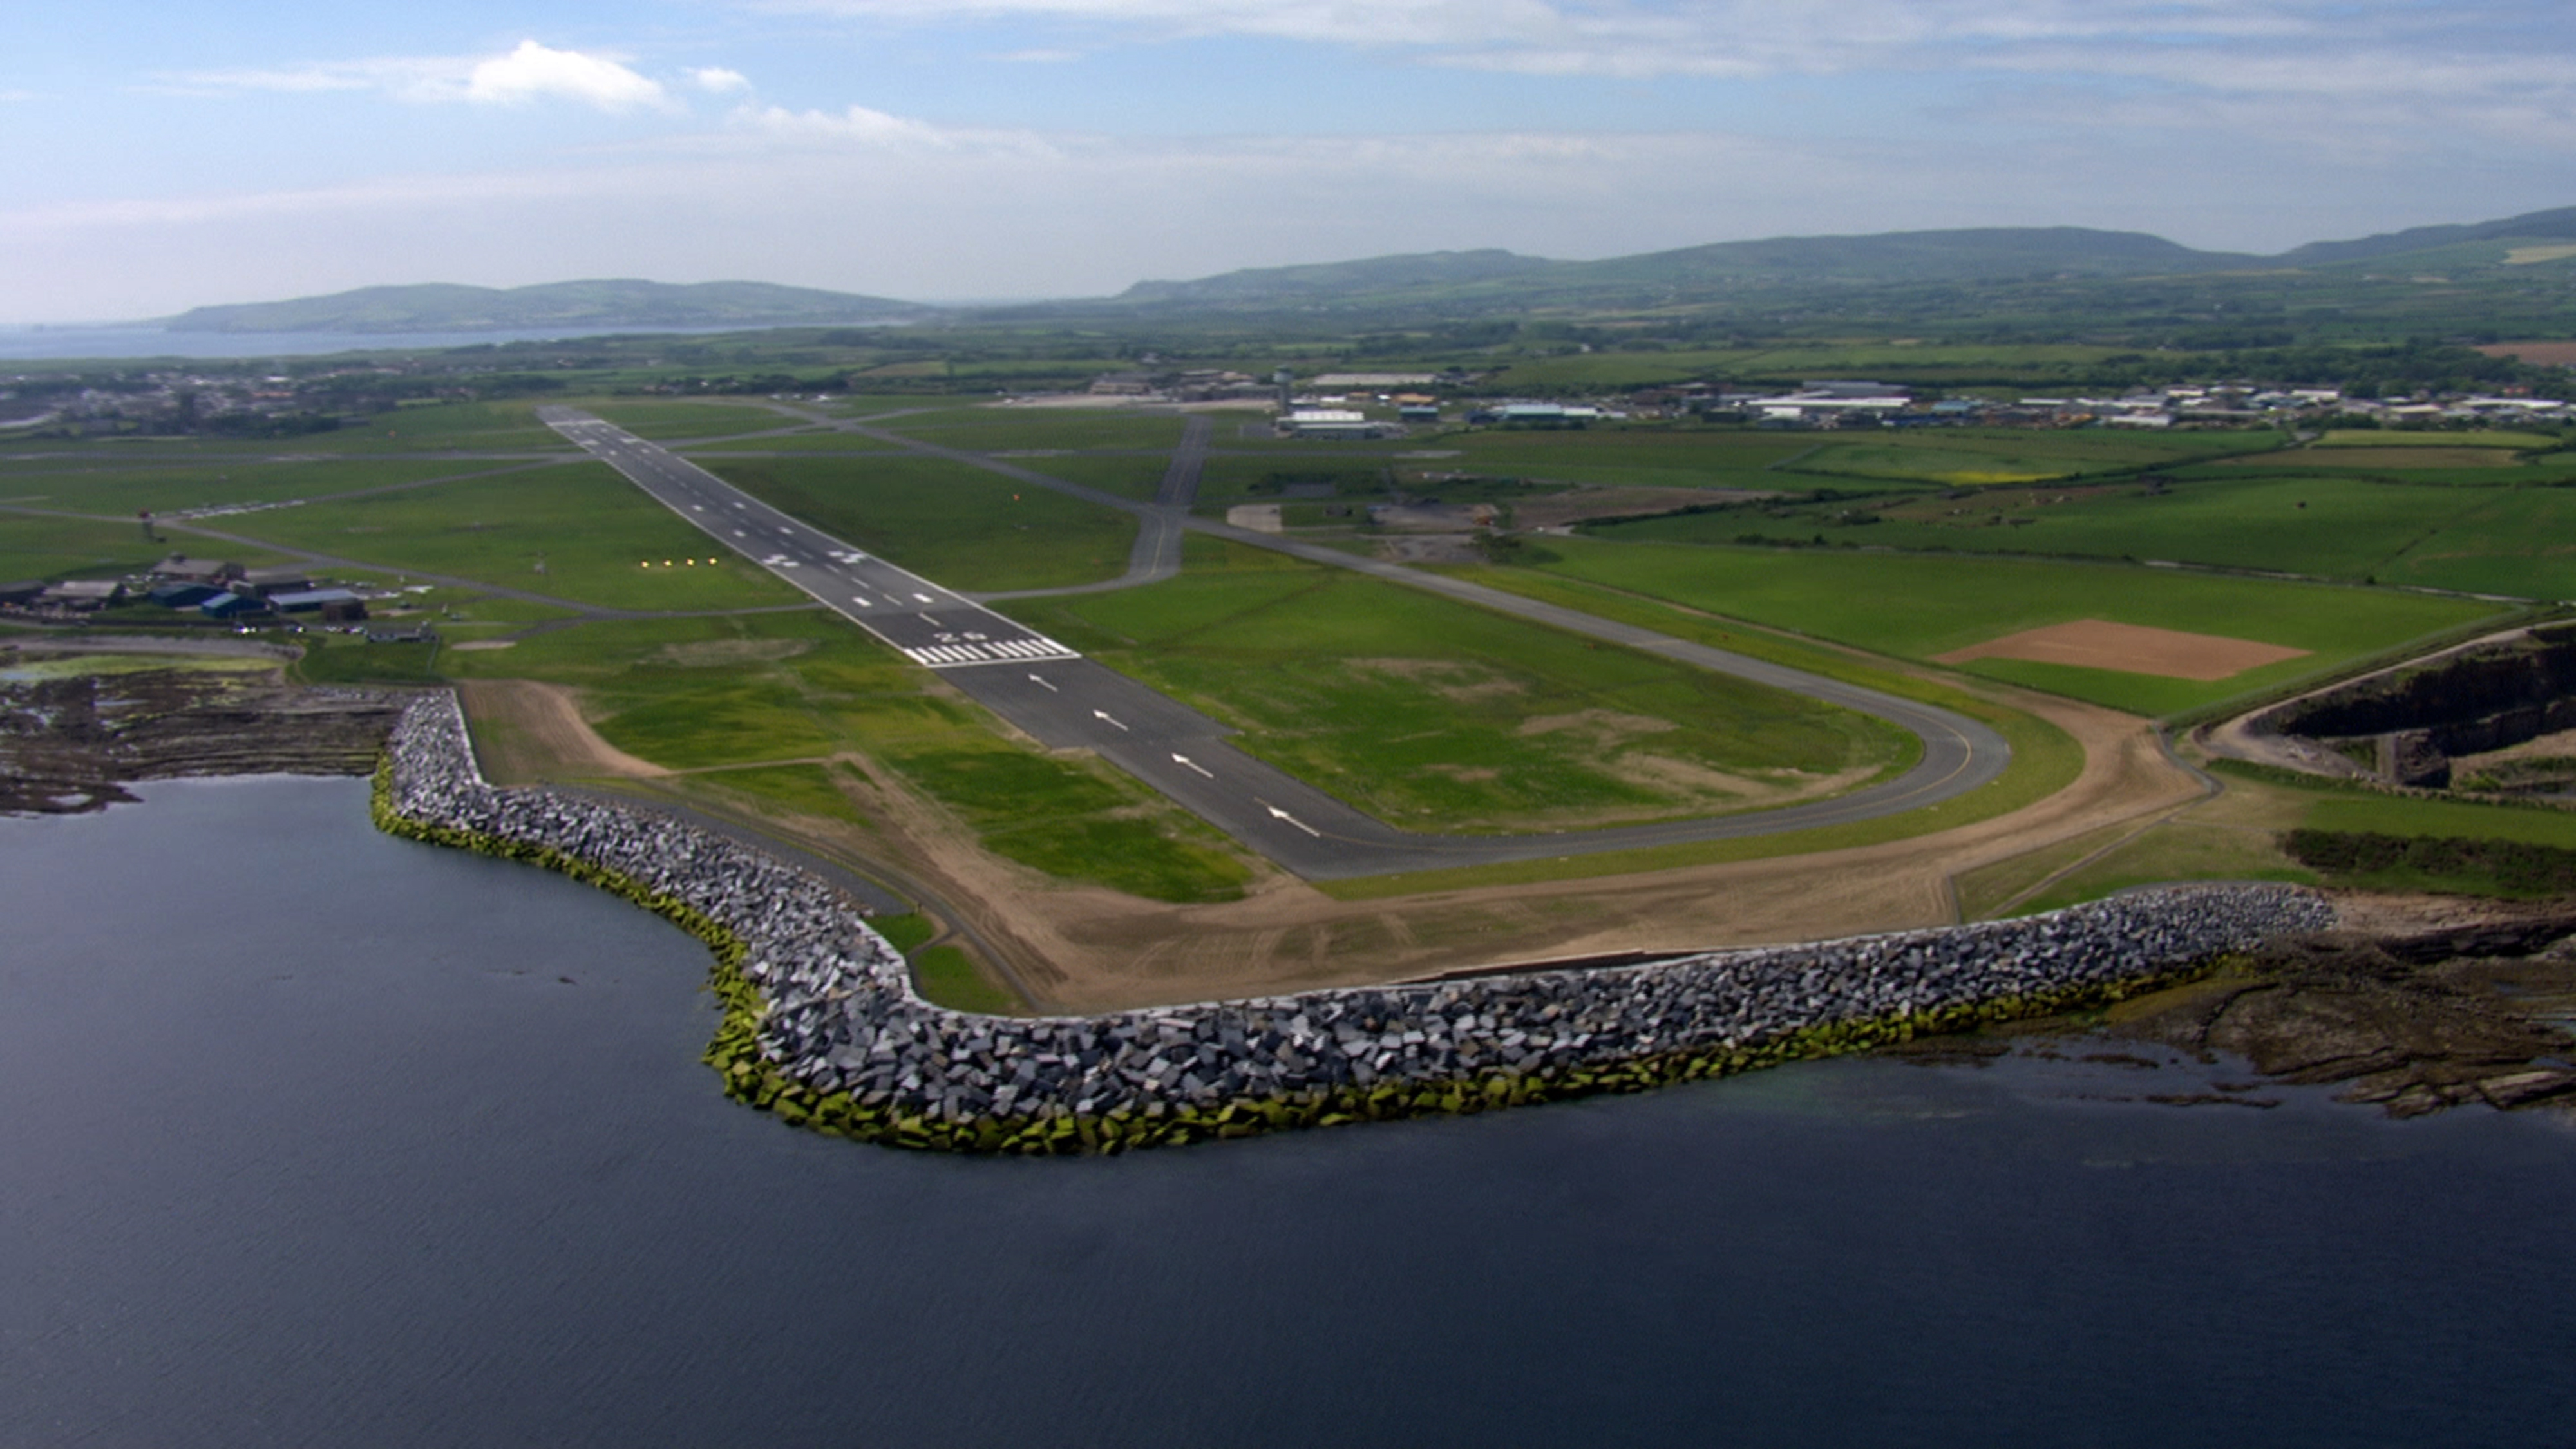 View of the completed Isle of Man runway extension with armoured revetment